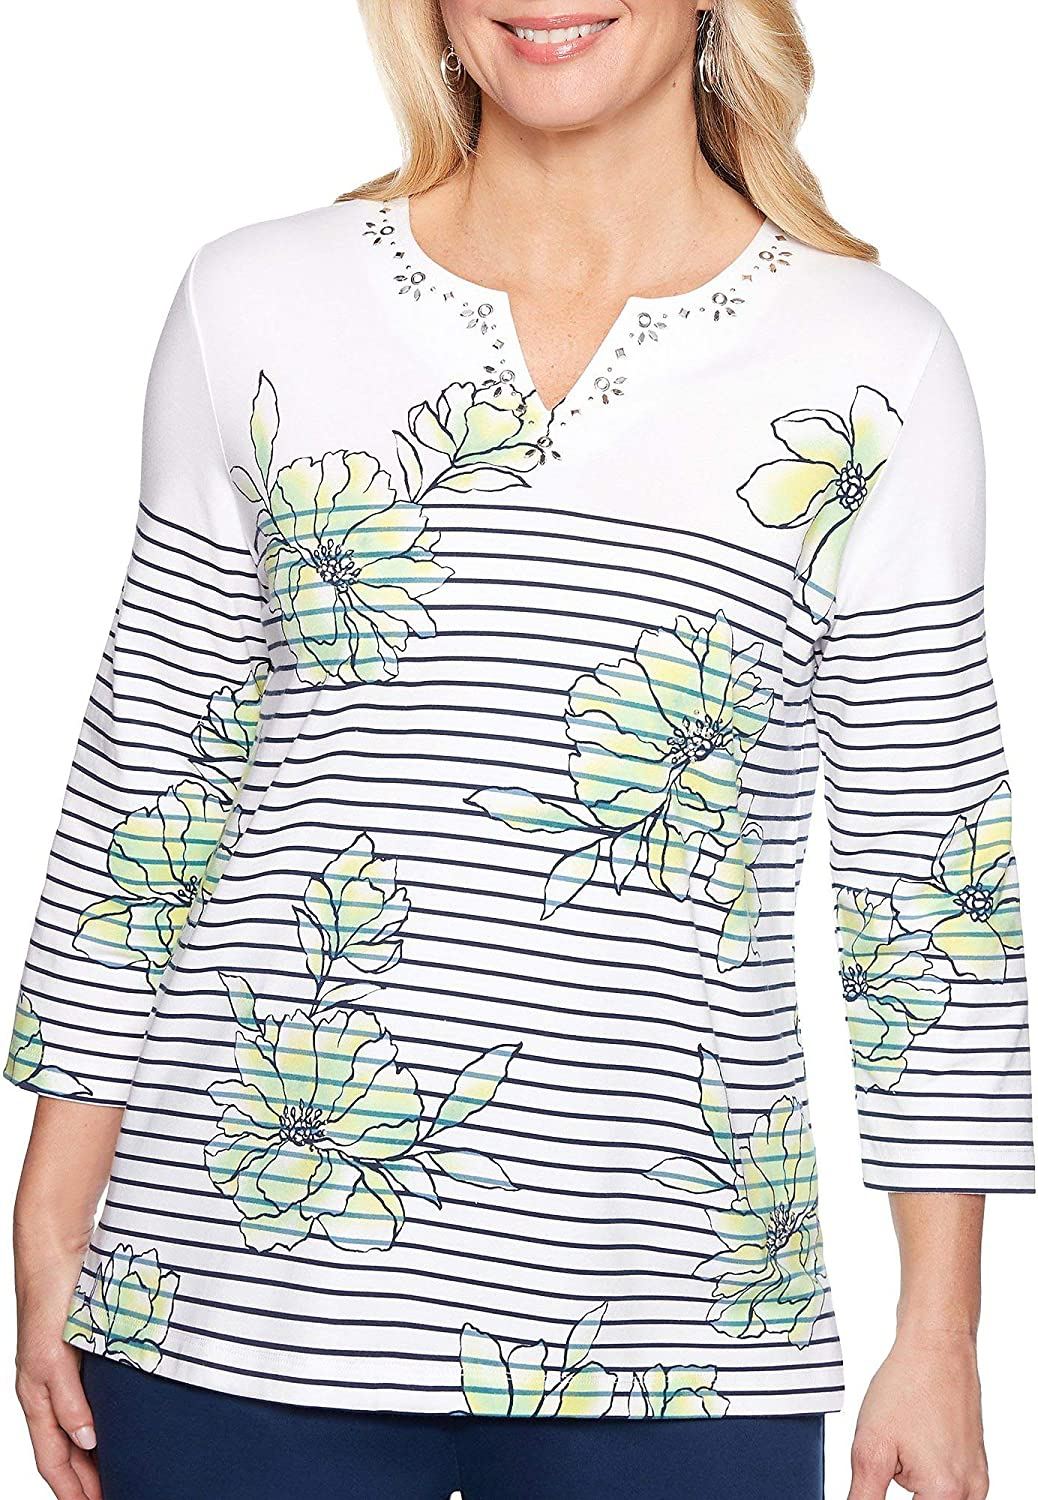 Alfred Dunner Womens Cote D'Azur Striped Floral Top